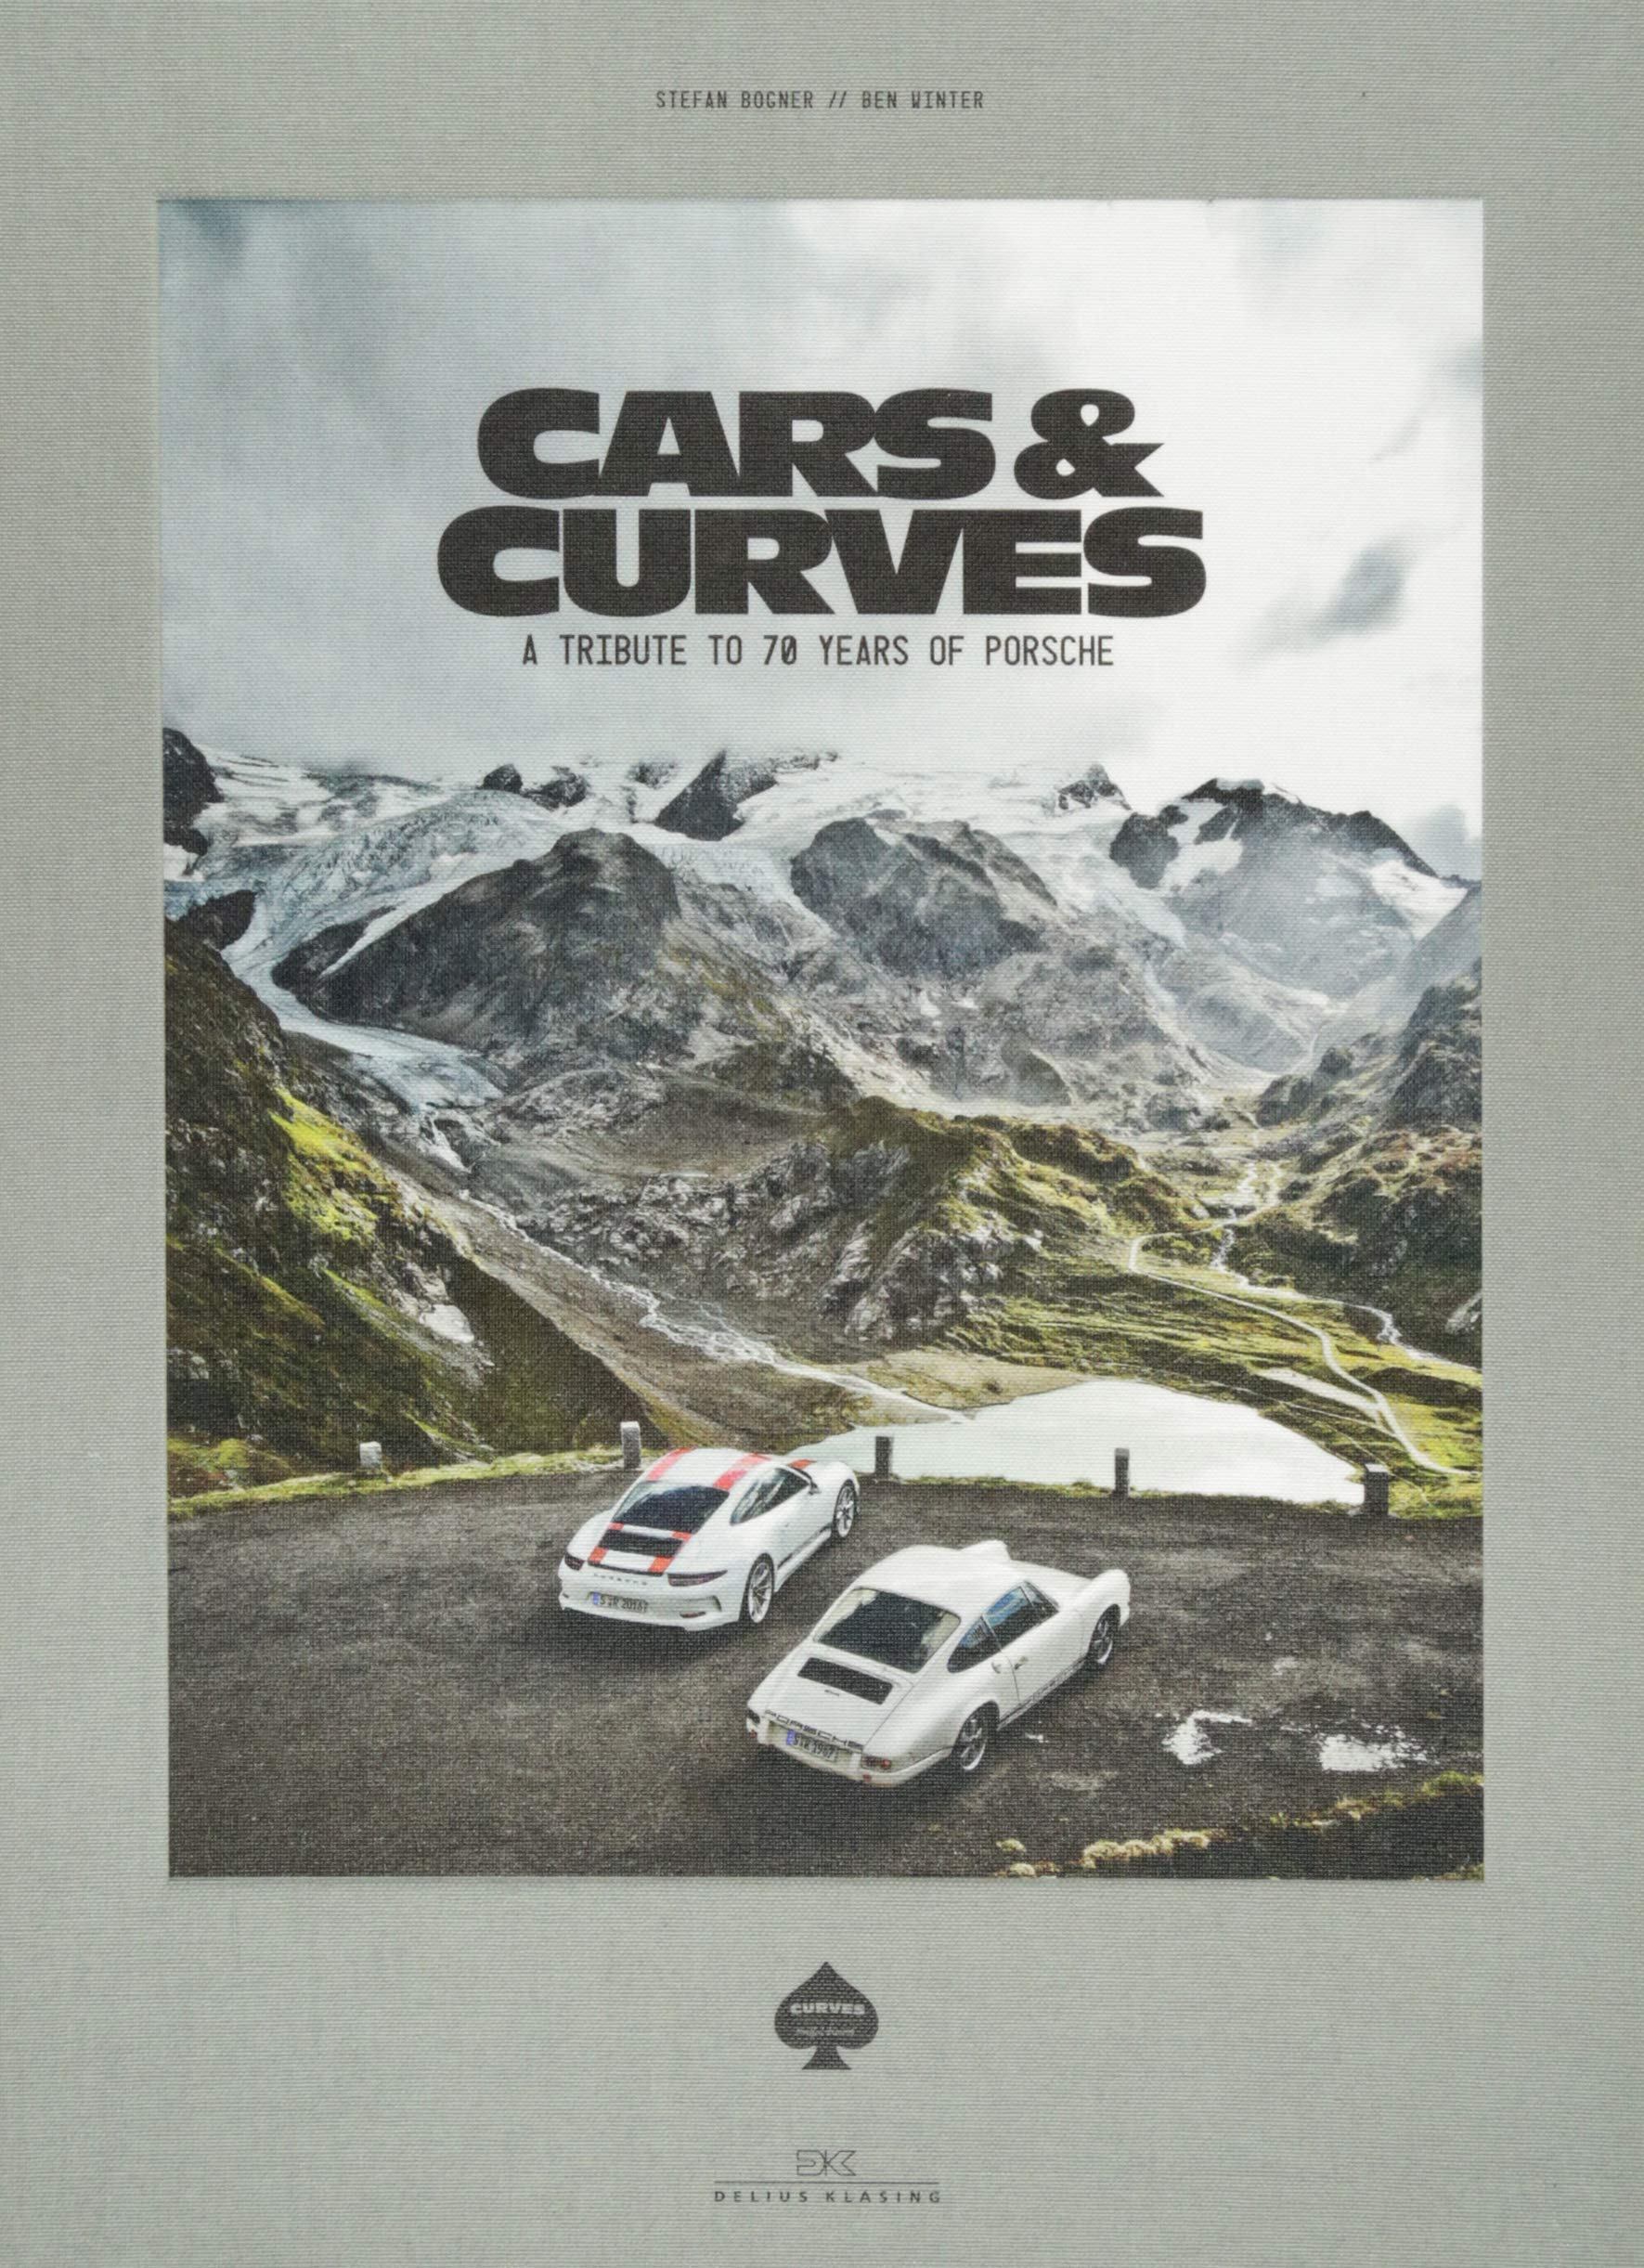 Buy Cars & Curves: A Tribute to 70 Years of Porsche by Stefan Bogner & Ben Winter